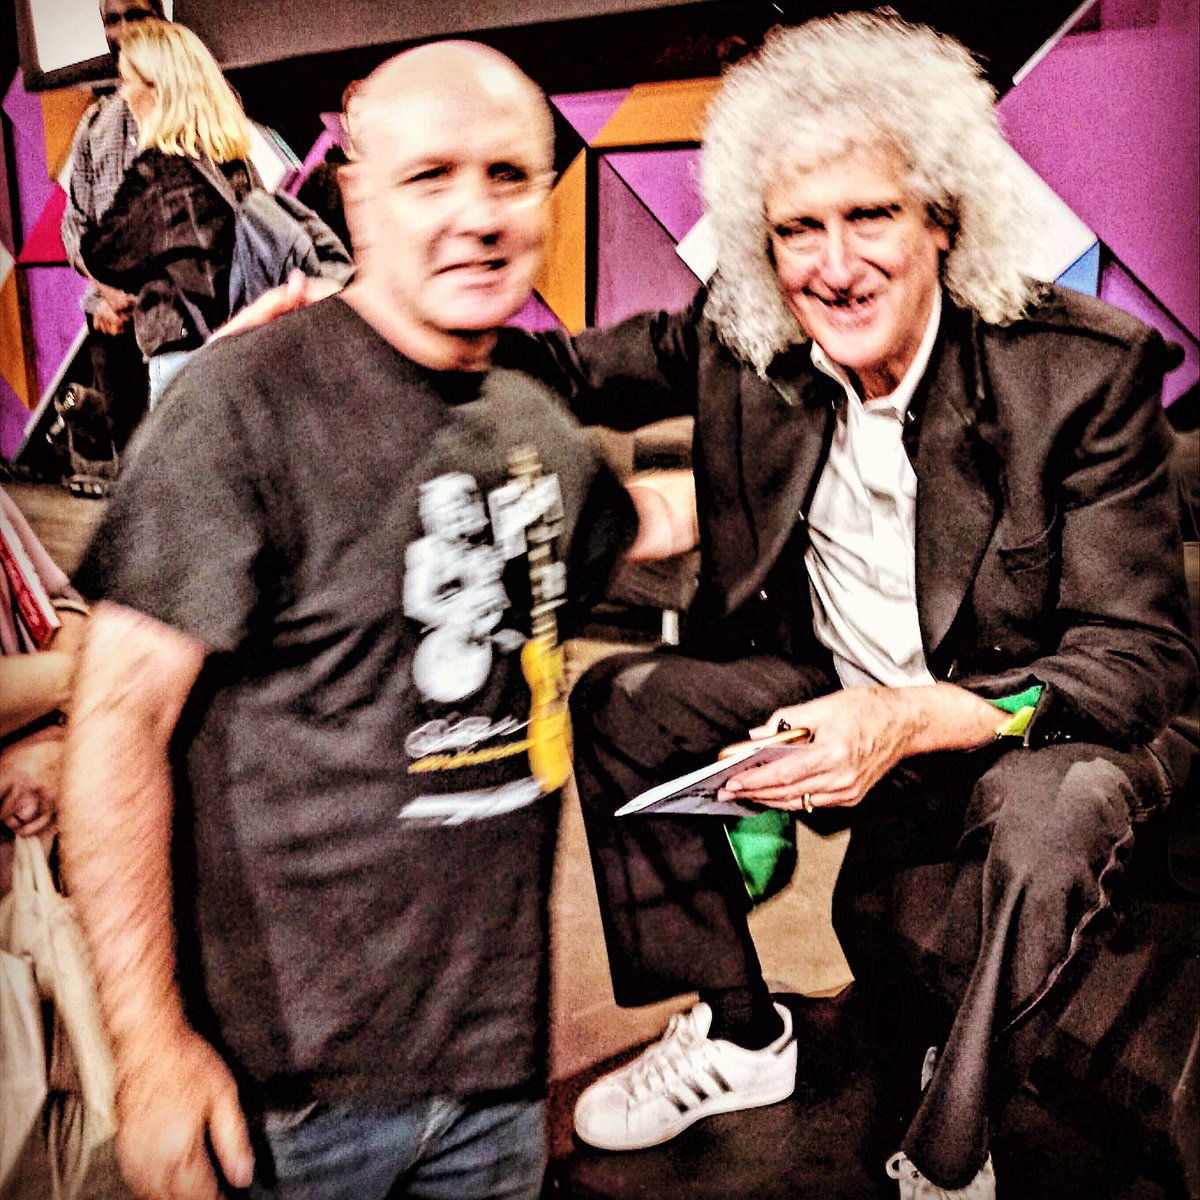 Met one of my guitar heroes Brian May last night! Brian was one of the guests on the BBC radio 4 live broadcast of the Front Row show at the BBC at Edinburgh Festival tent!#brianmay#queen#edinburghfringe#edinburghfestival#bbc <br>http://pic.twitter.com/E1rmoiRT3i